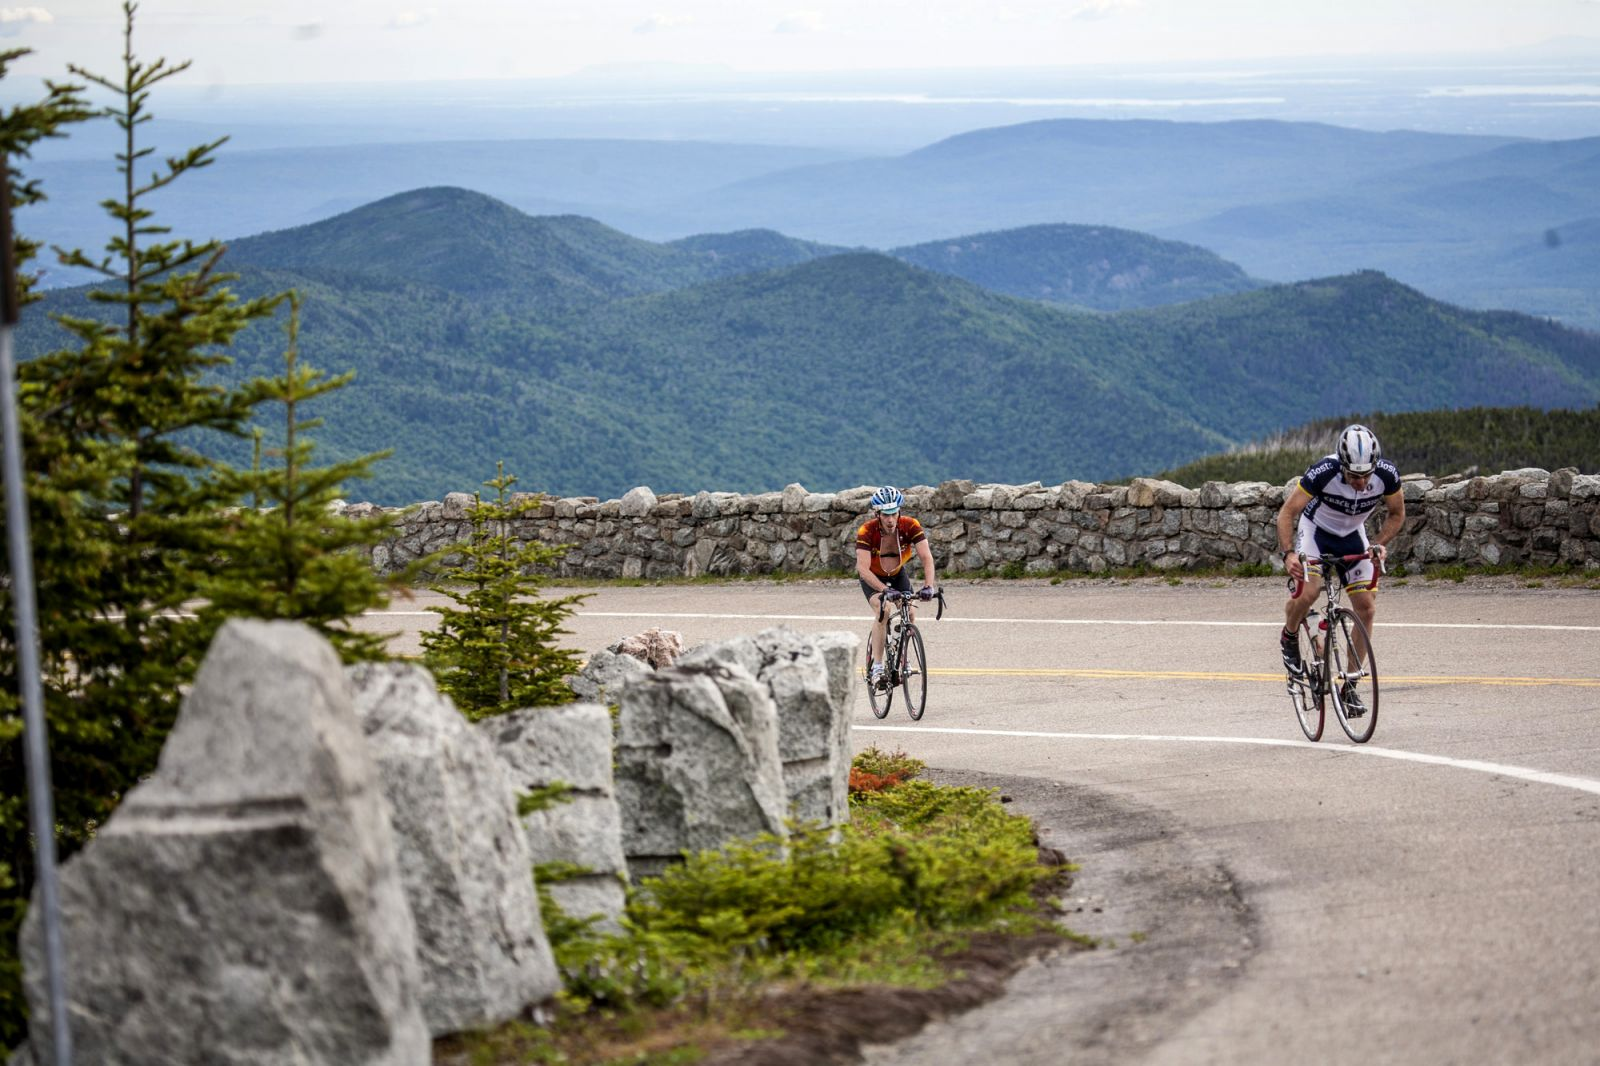 Dedicated cyclists love the challenging trek up the Whiteface Veterans Memorial Highway.